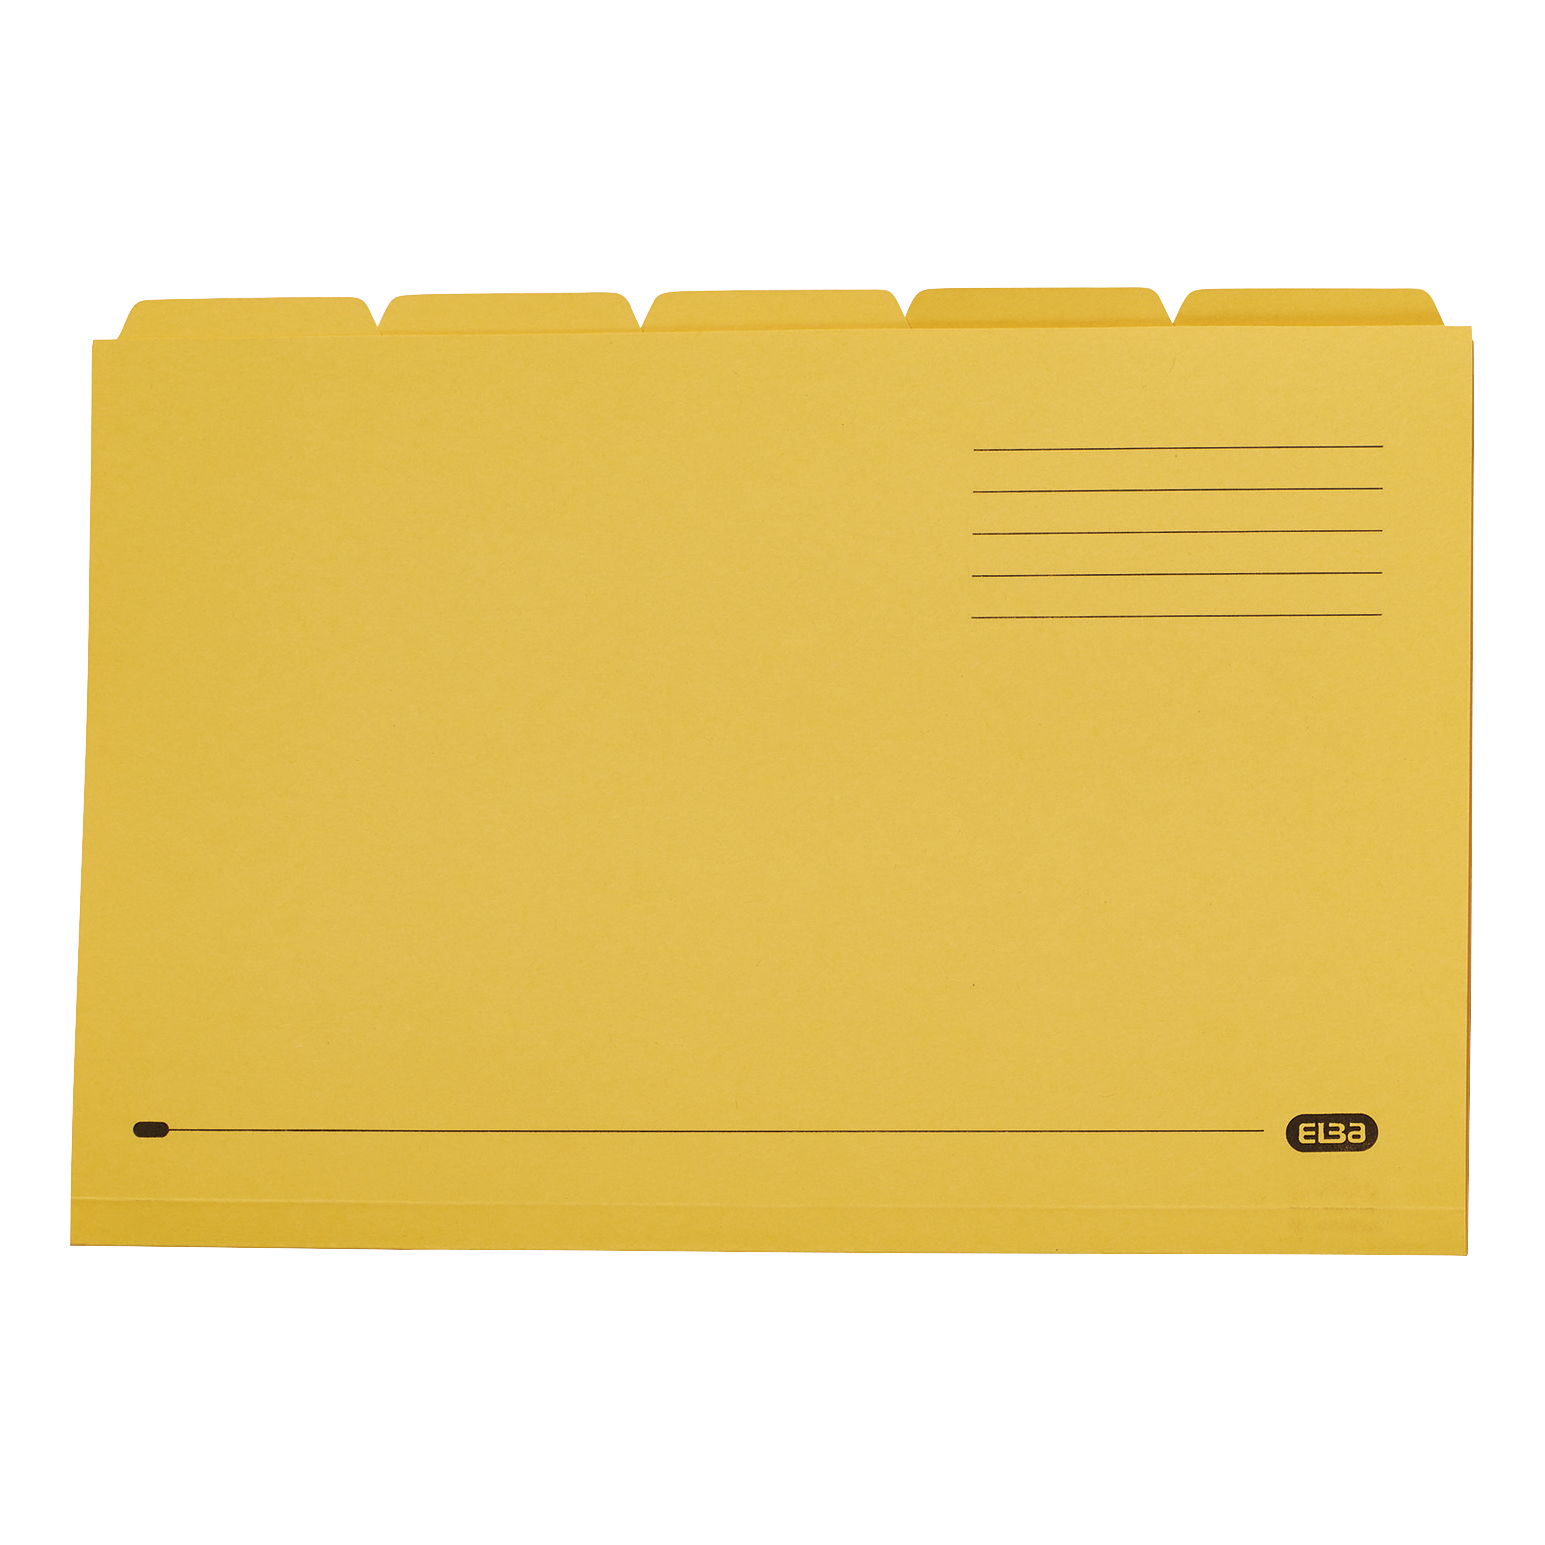 Elba Tabbed Folders Recycled Mediumweight 250gsm Manilla Set of 5 Foolscap Yellow Ref 100090237 Pack 20